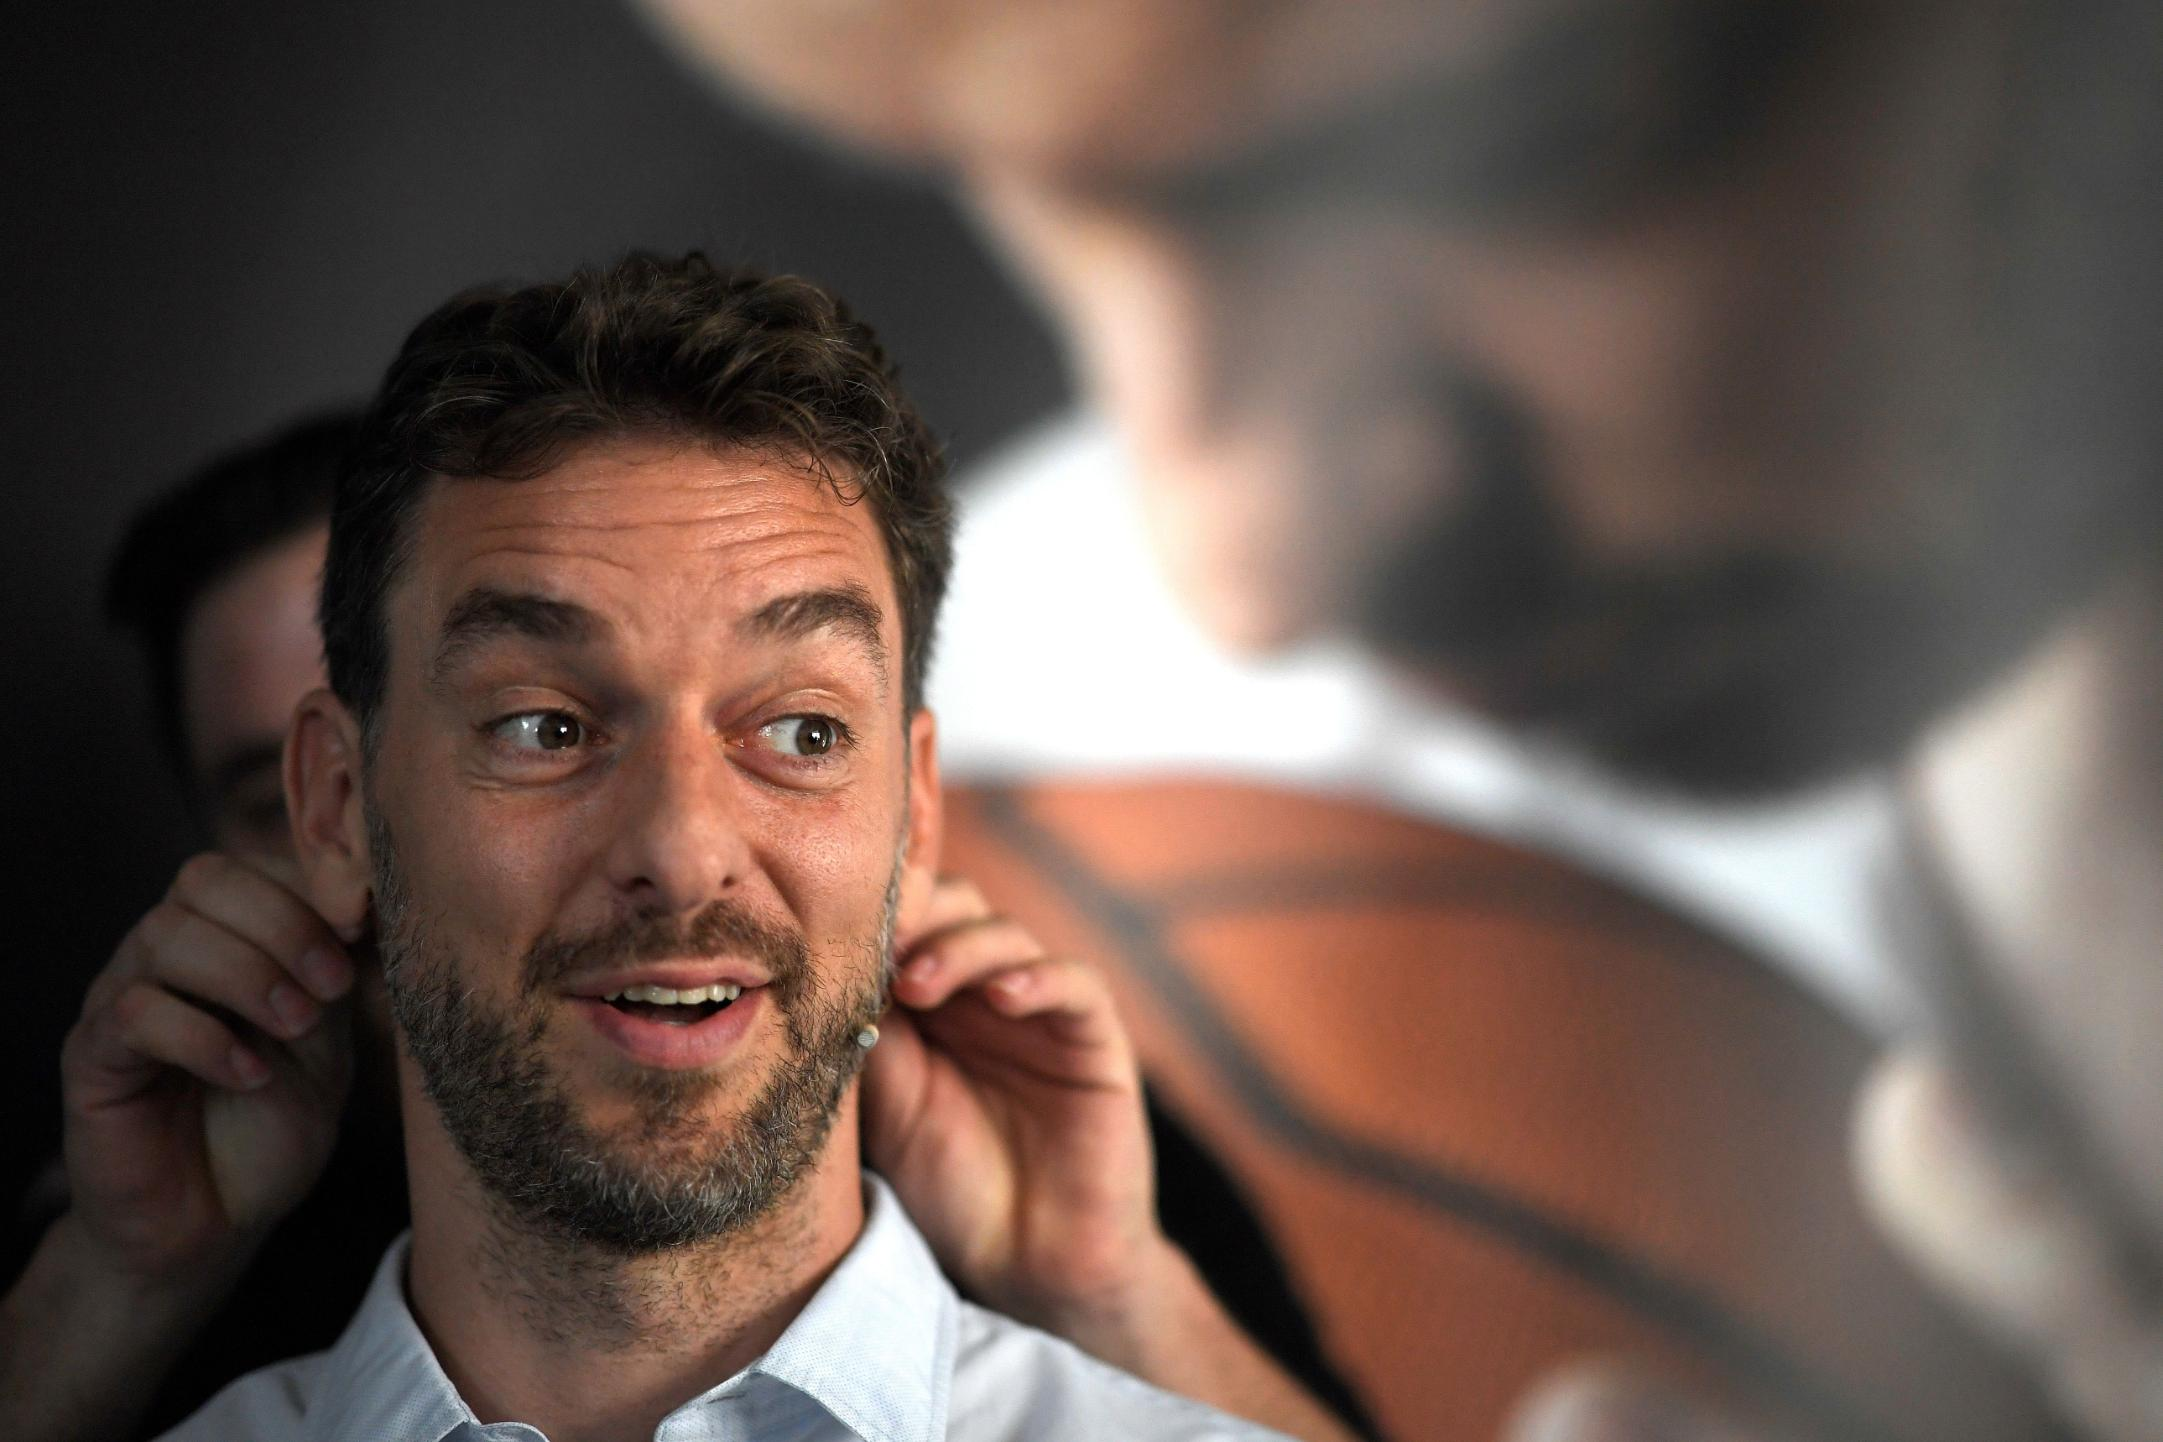 Former NBA star Pau Gasol is determined to help others after retiring from the game